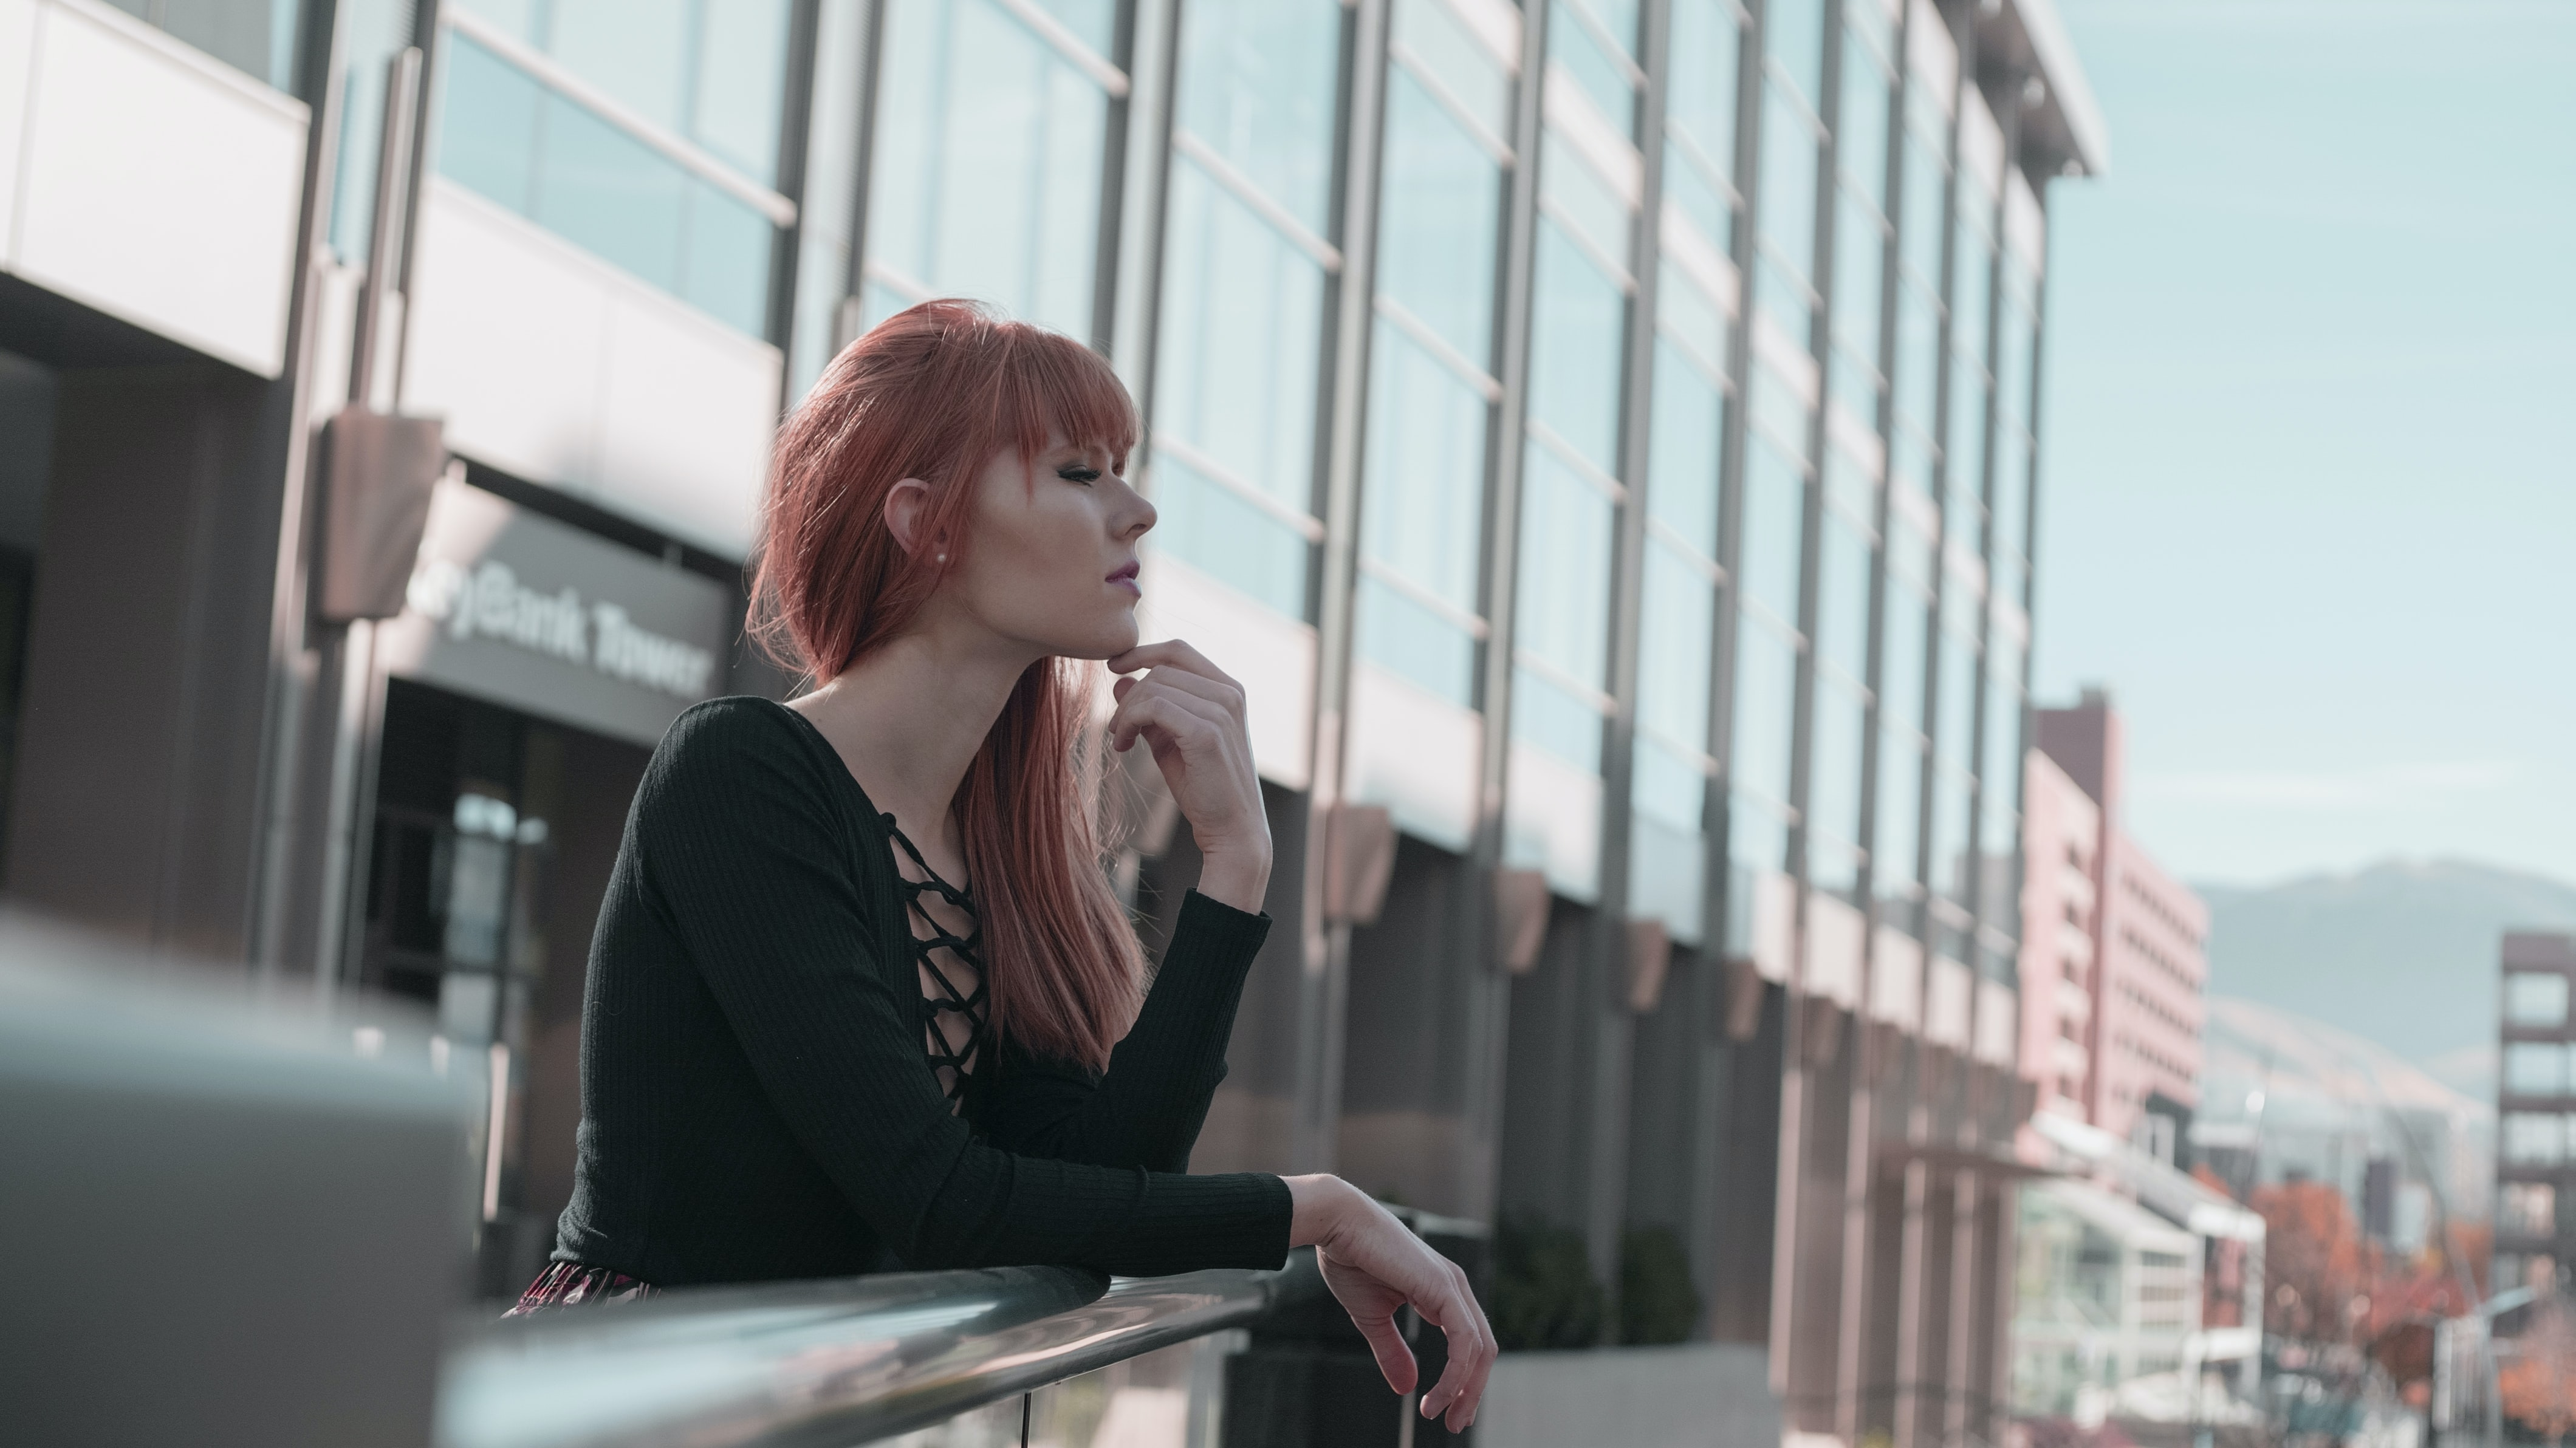 A red-headed woman leaning against a railing